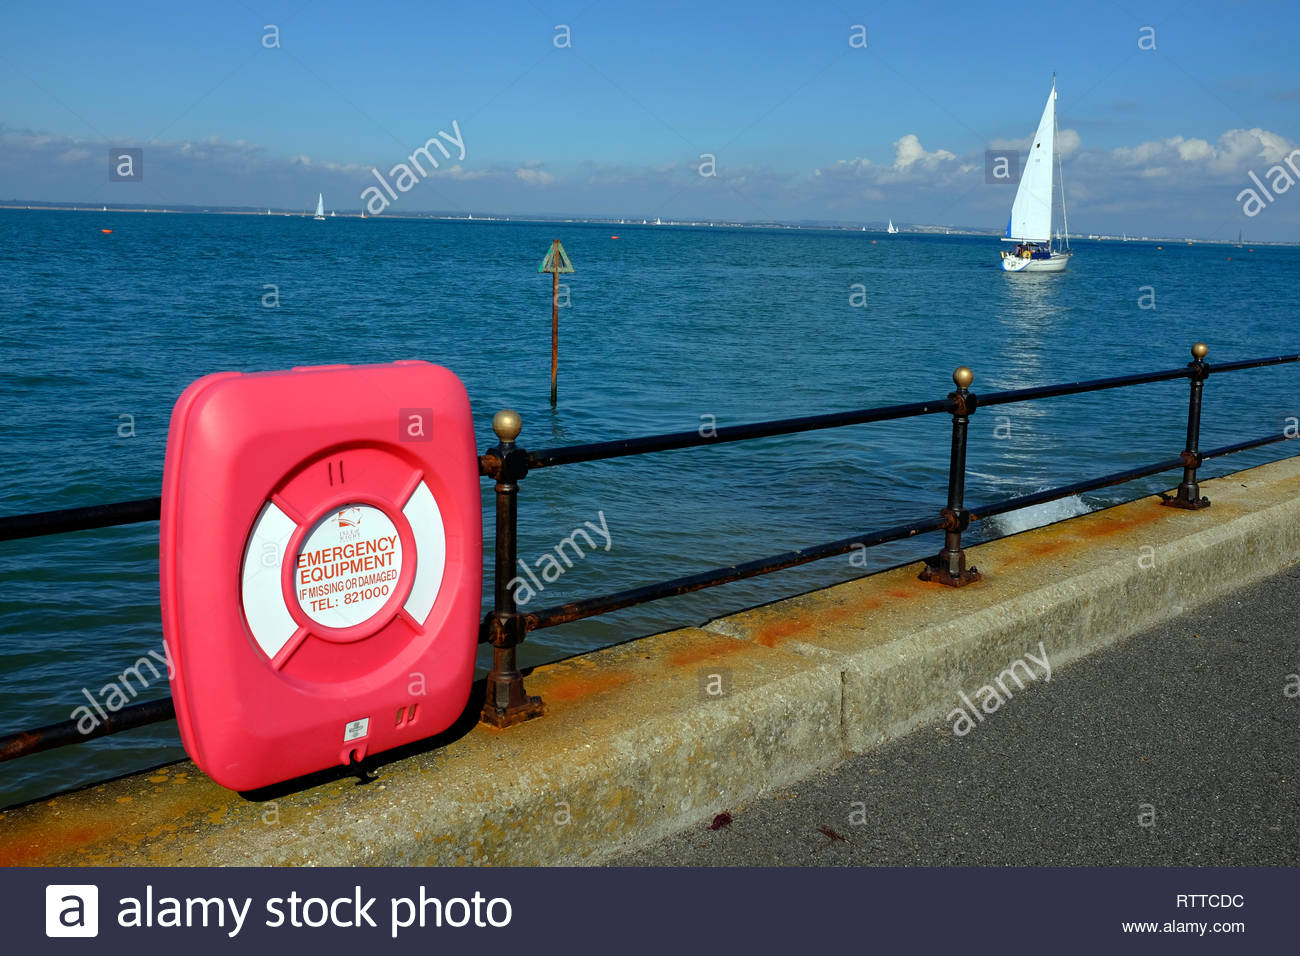 lifebelt, safety, sea, seafront, yacht, The Solent, Cowes, Gurnard, Victoria, parade, Isle of Wight, England, UK, - Stock Image